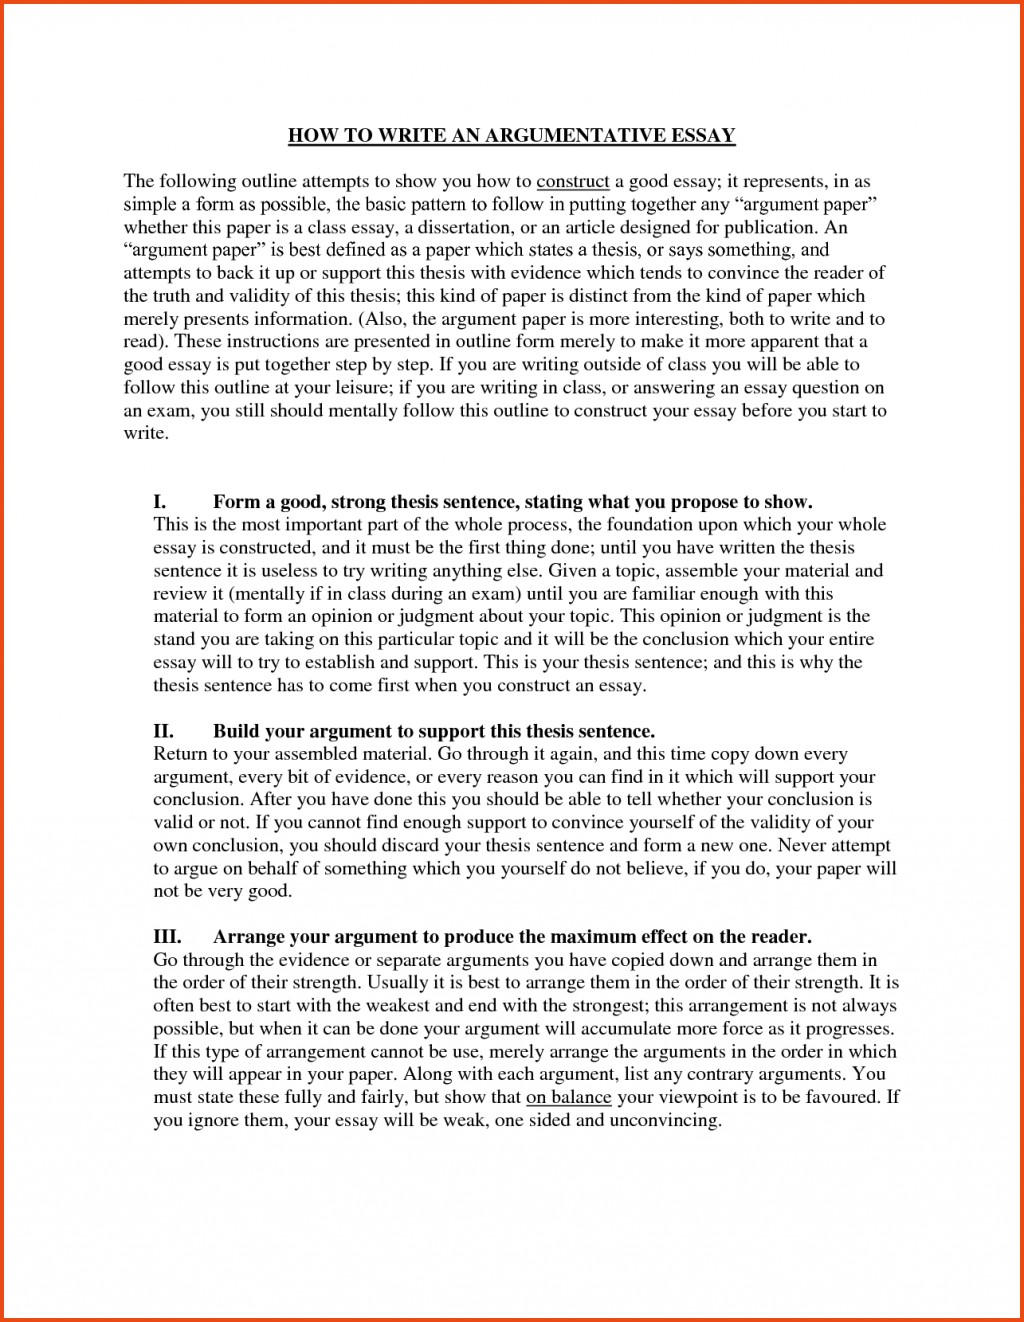 005 Essay Example How To Start An Brilliant Ideas Of Good Ways About Yourself Dissertation Nice Amazing Analysis On A Book With Question Two Books Large